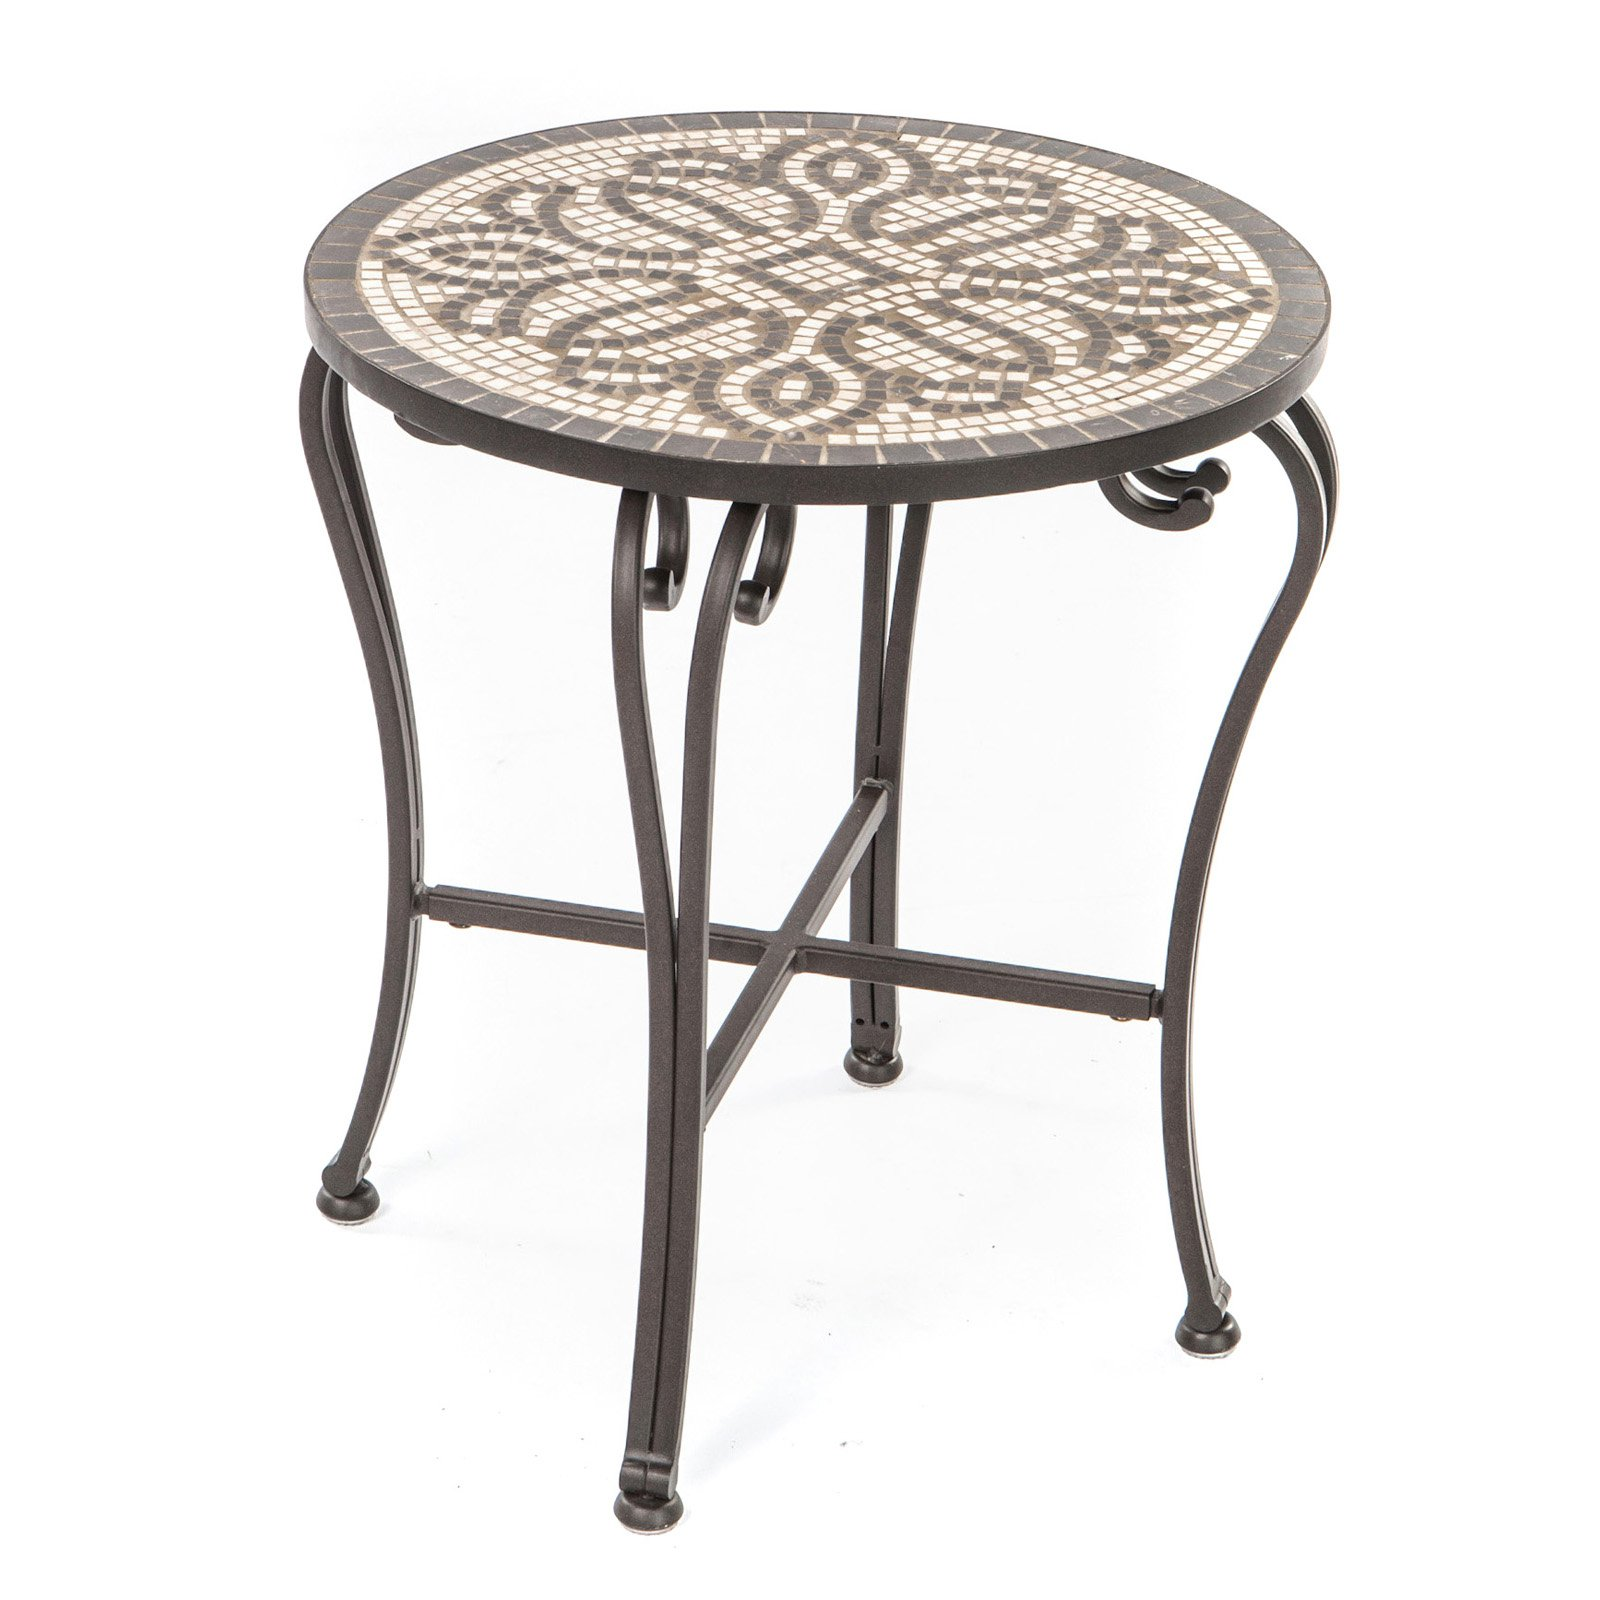 patio accent table darcylea design large tables outdoor mirrored side for bedroom set nesting jcpenney quilts pottery barn furniture lamps plus iphone tripod target reclaimed wood